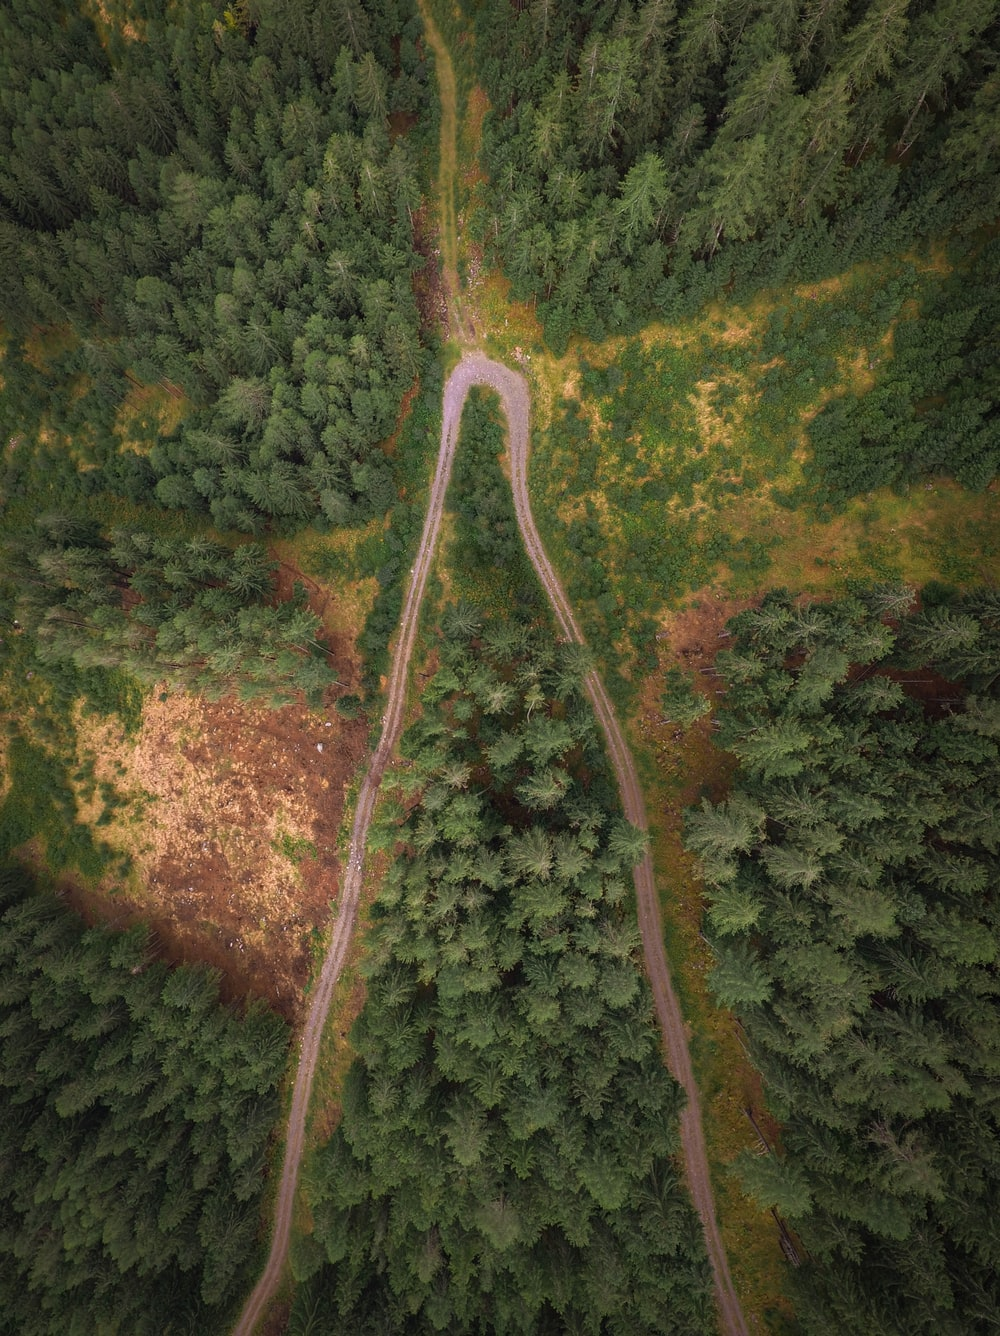 aerial photography of dirt road surrounded by trees at daytime